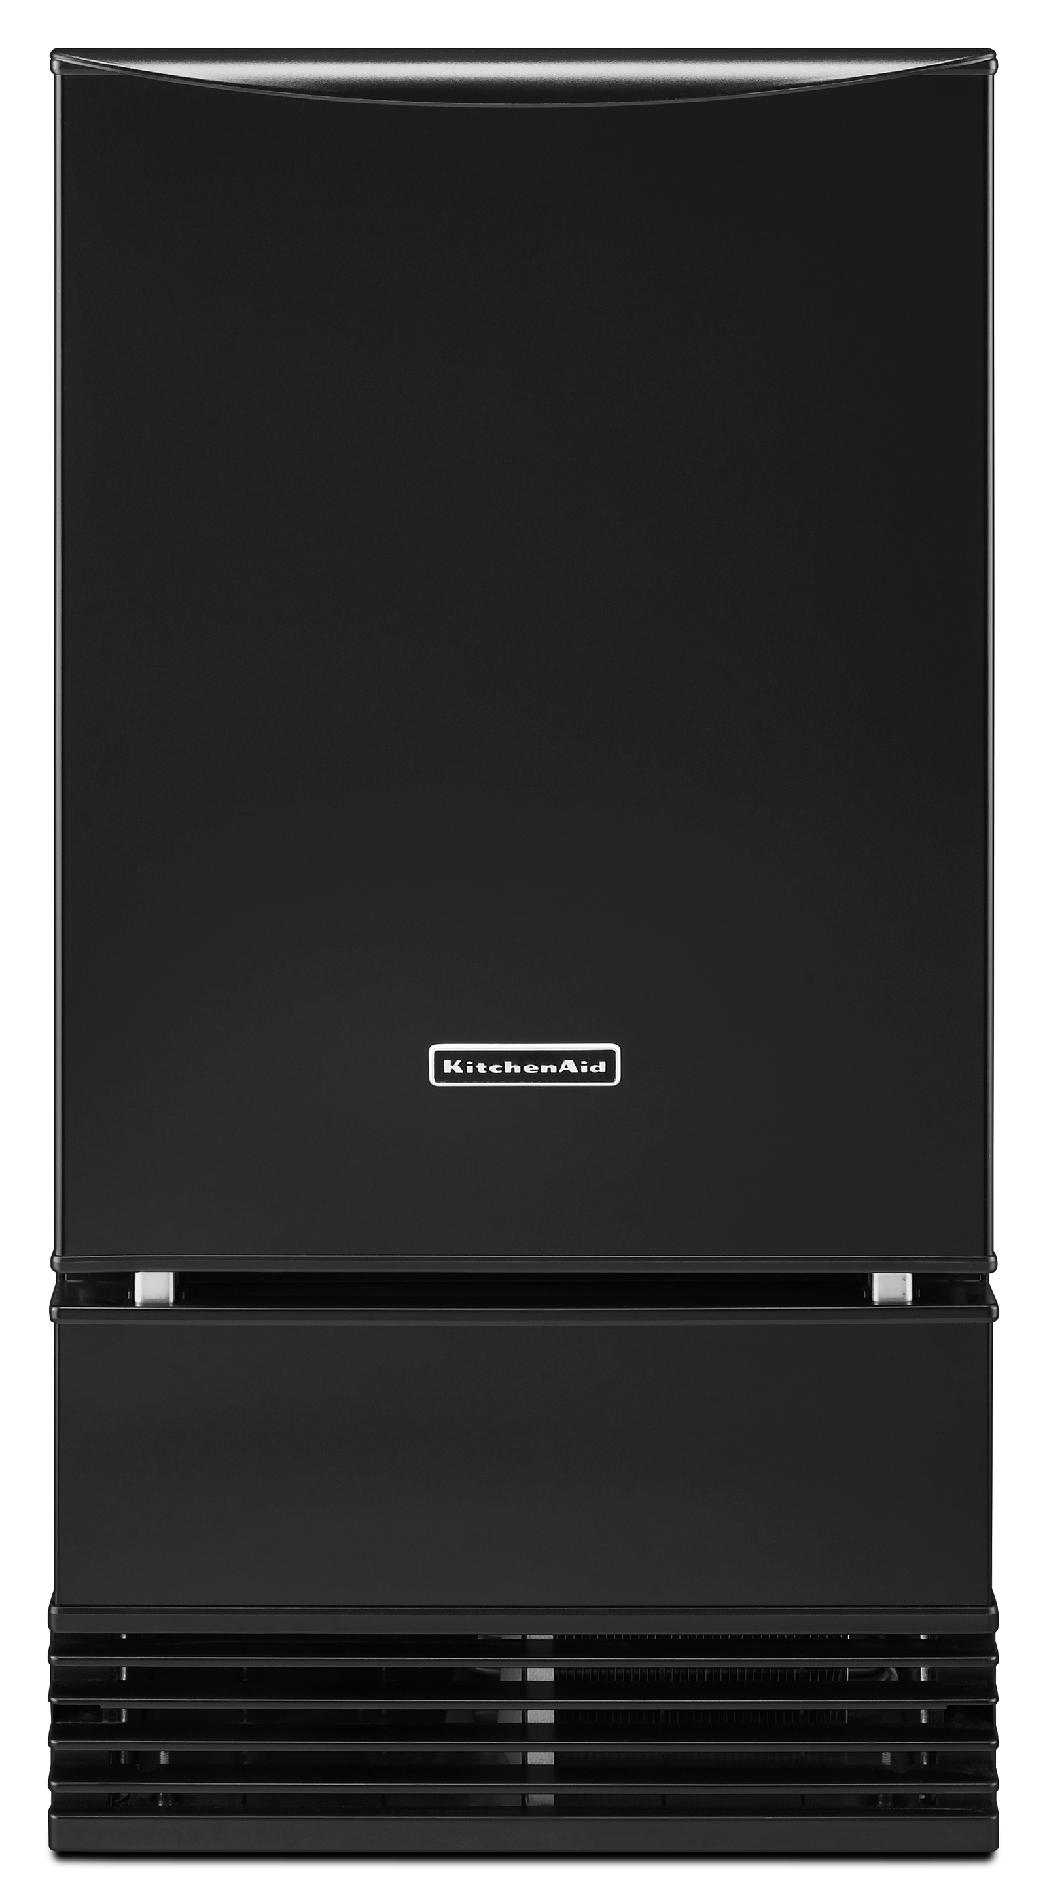 KitchenAid KUIS18PNZB 18 Ice Maker w/ Drain Pump - Black